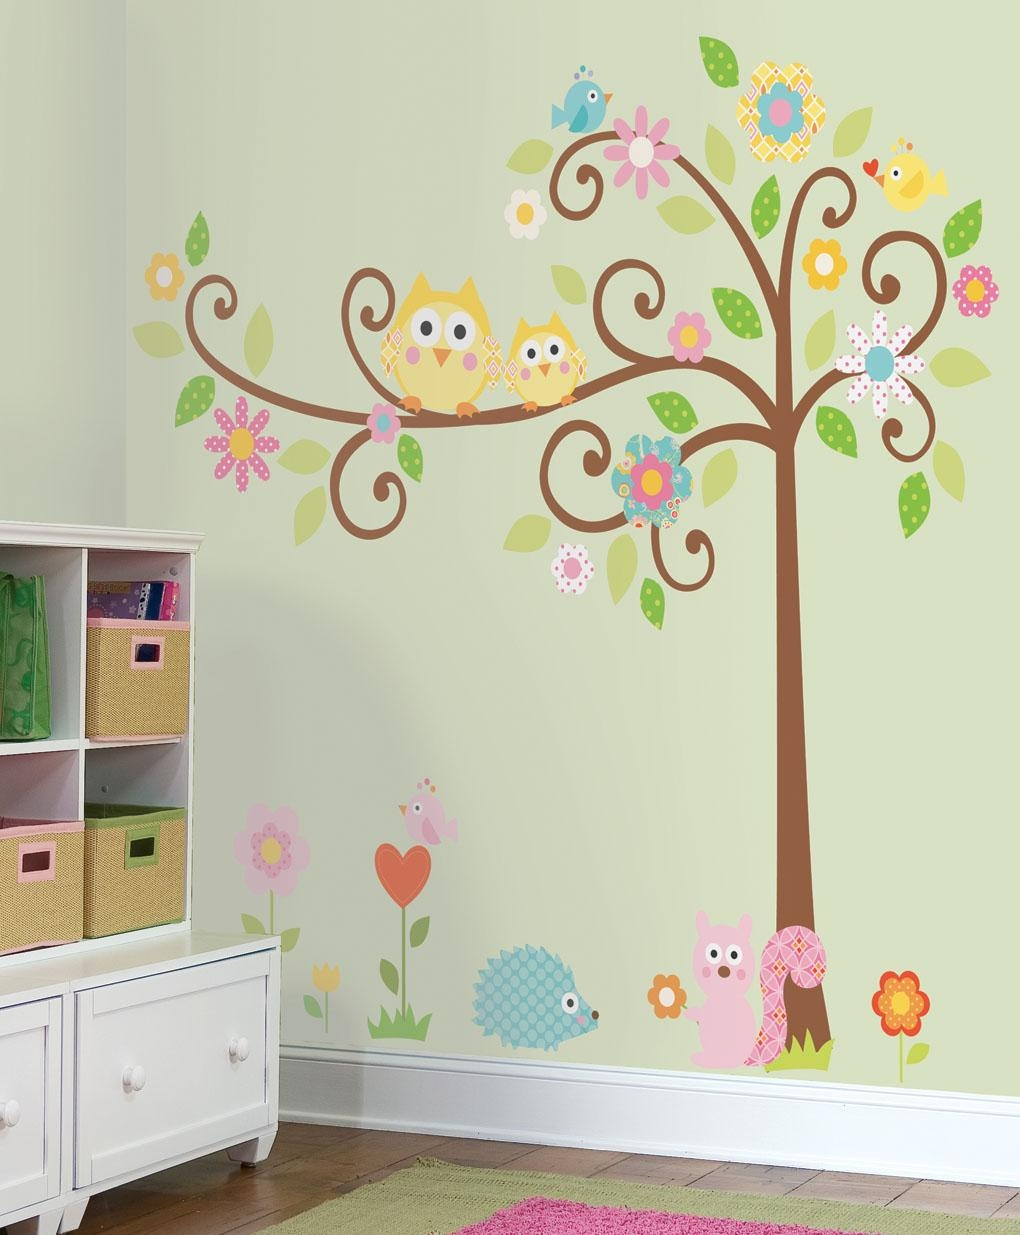 Nature Theme Removable Wall Stickers For Kids Rooms, Nursery With Preschool Classroom Wall Decals (Image 11 of 20)